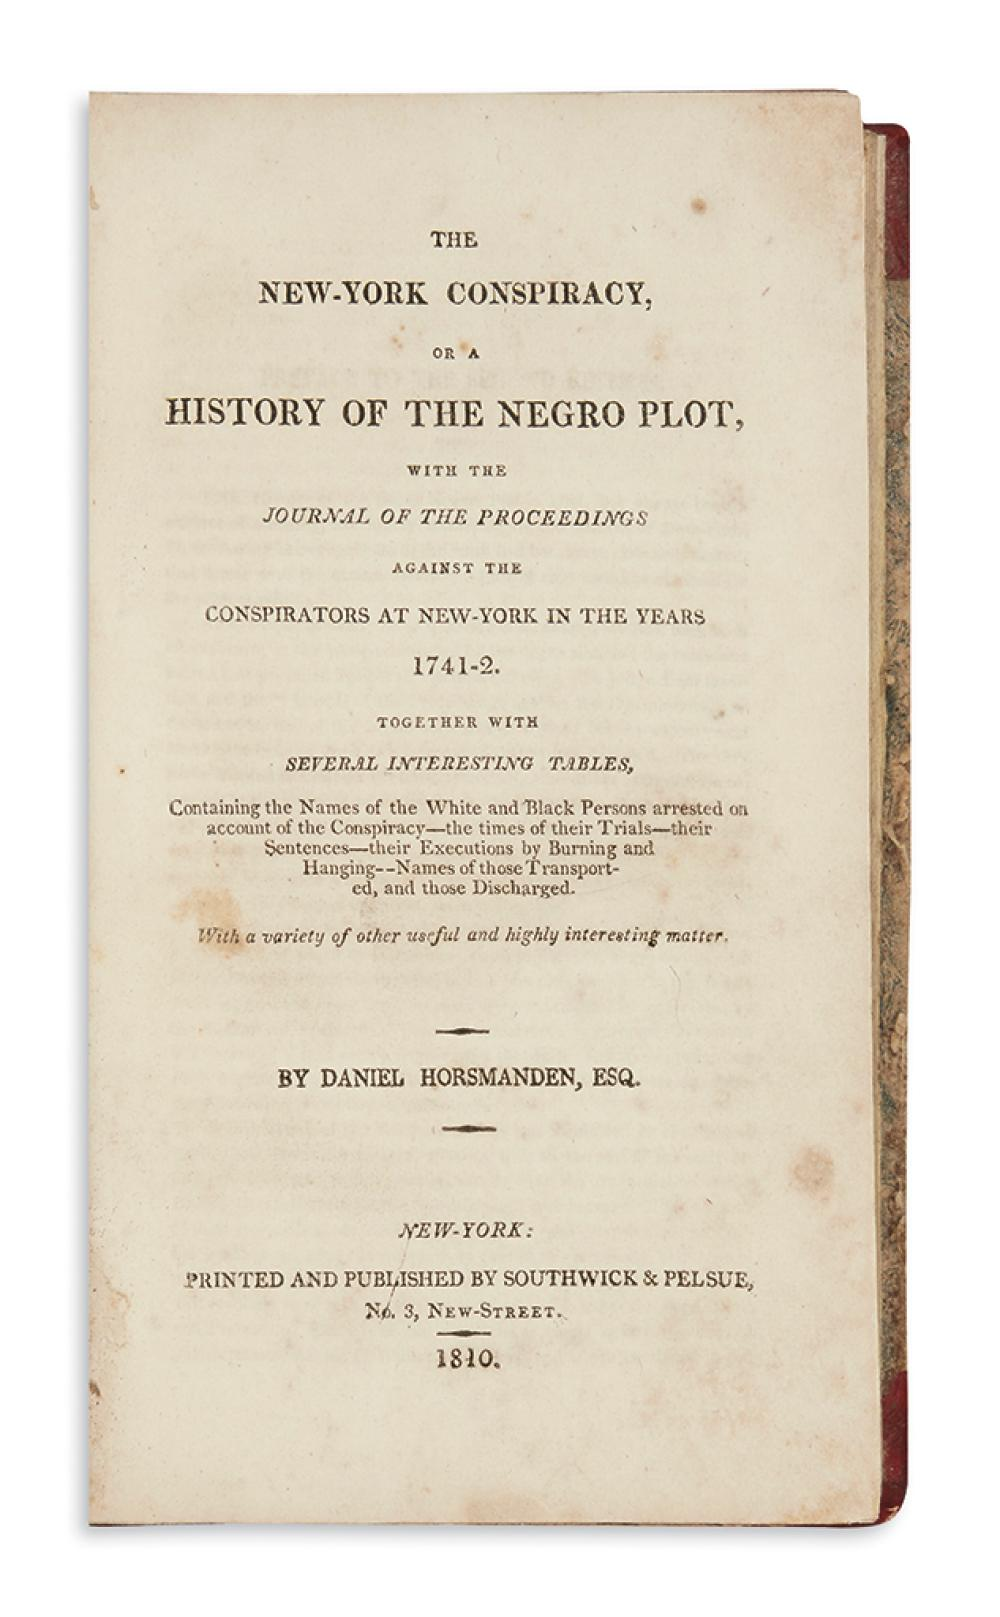 (SLAVERY AND ABOLITION.) Horsmanden, Daniel. The New-York Conspiracy, or a History of the Negro Plot.